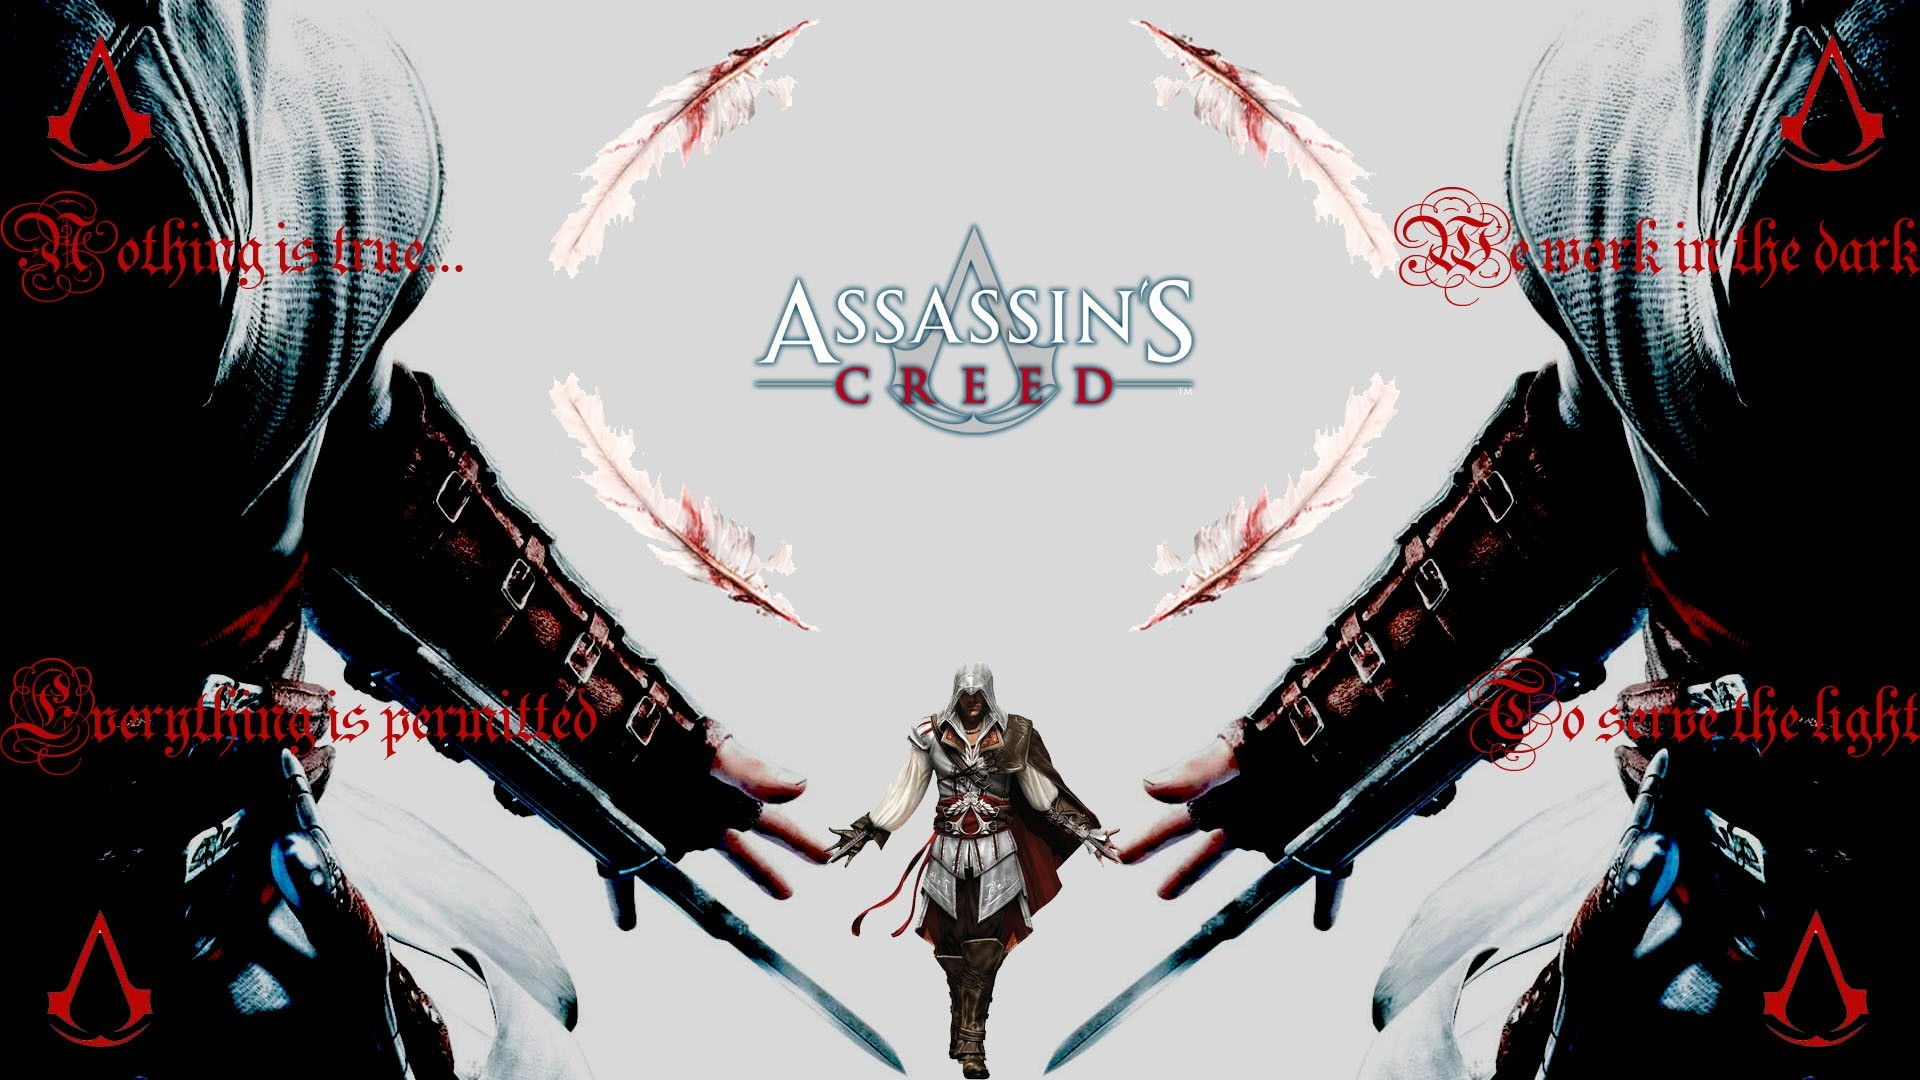 assassins creed Altair Ibn HD Wallpaper